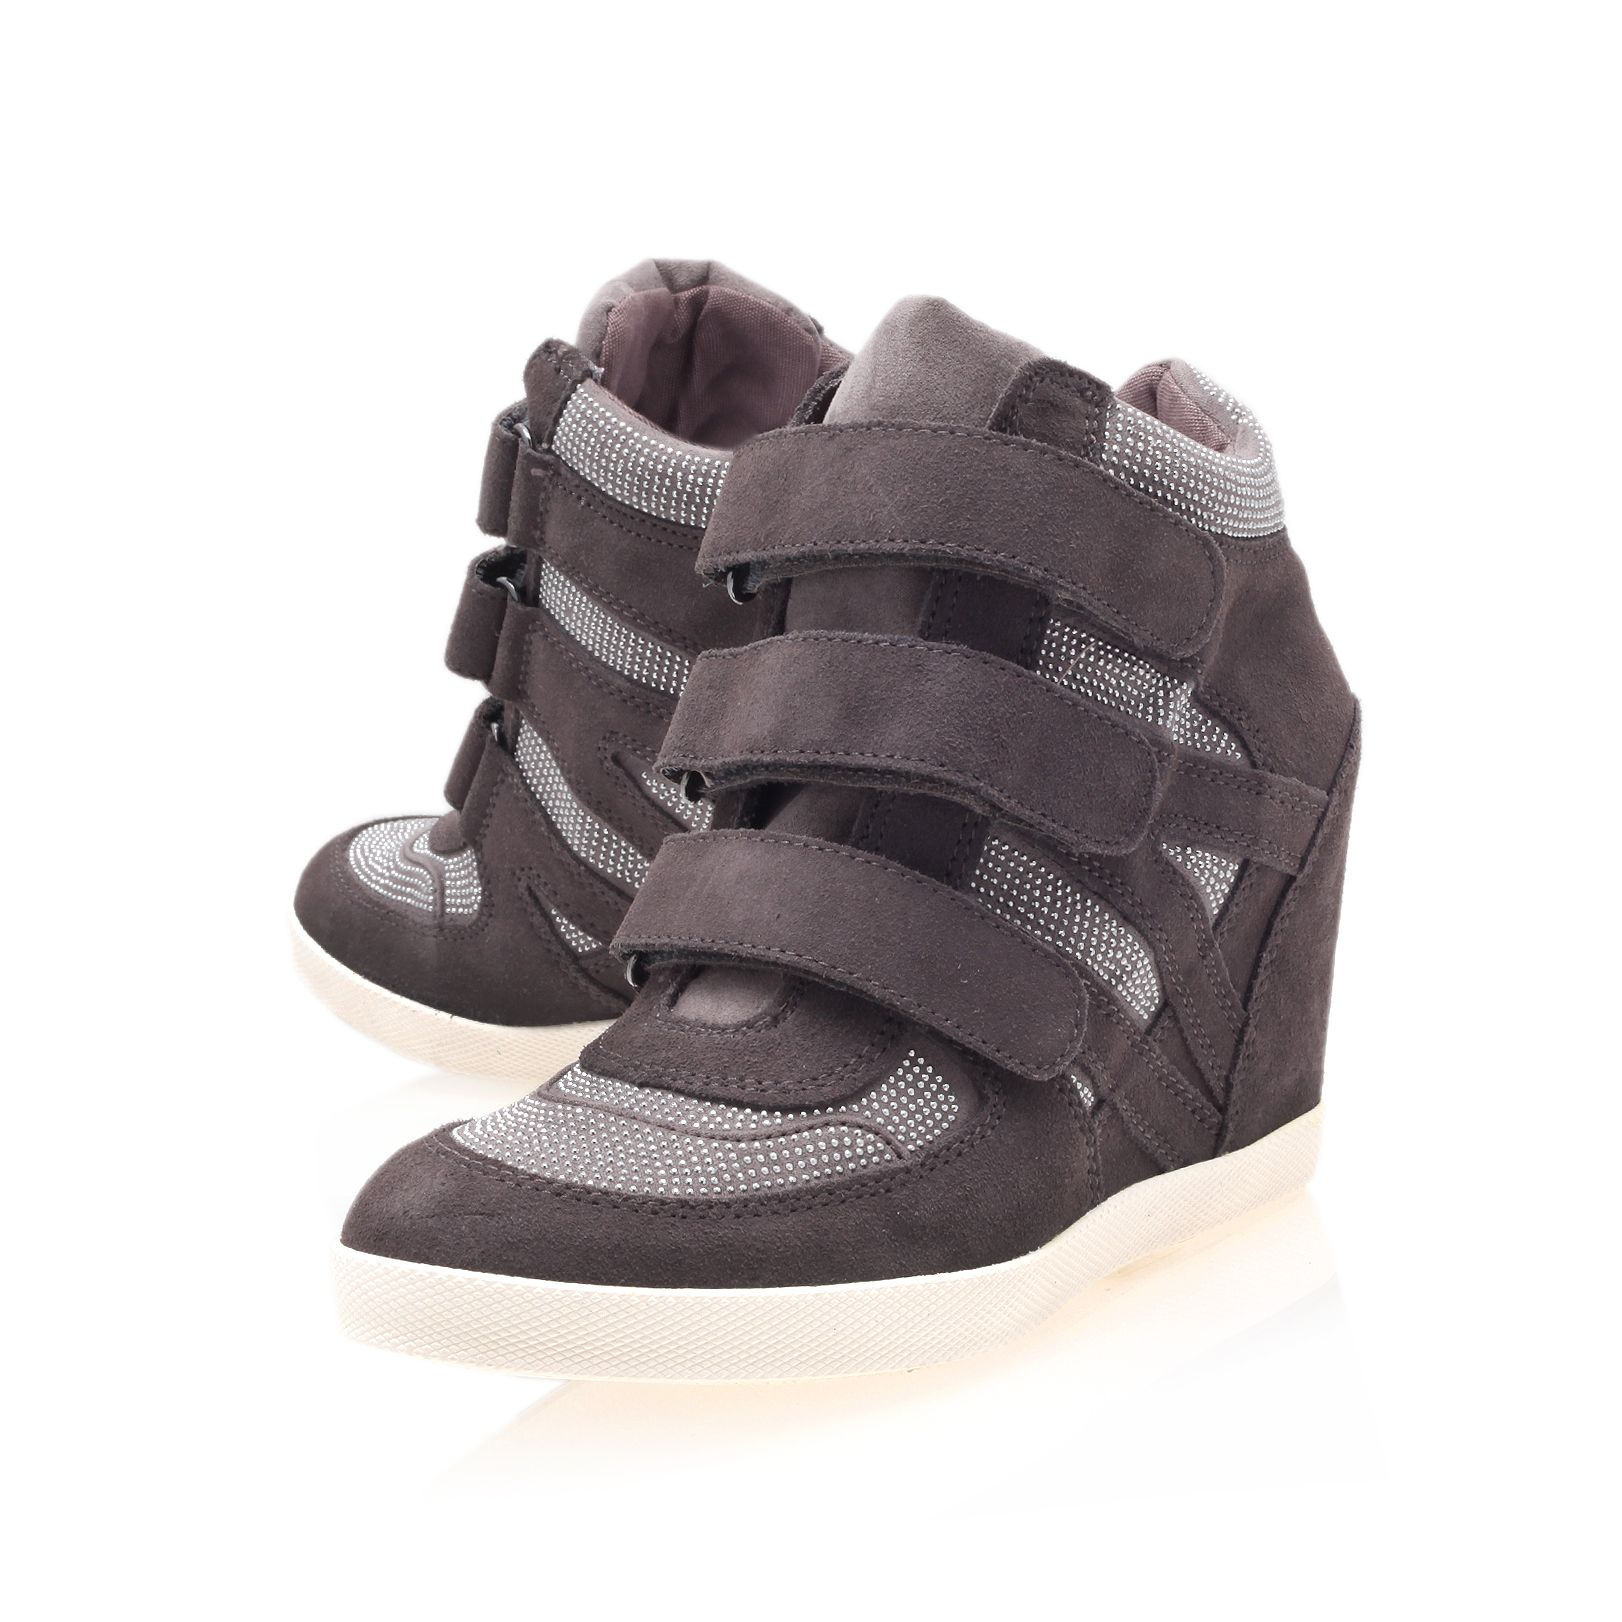 Rocksie high heel wedge trainers